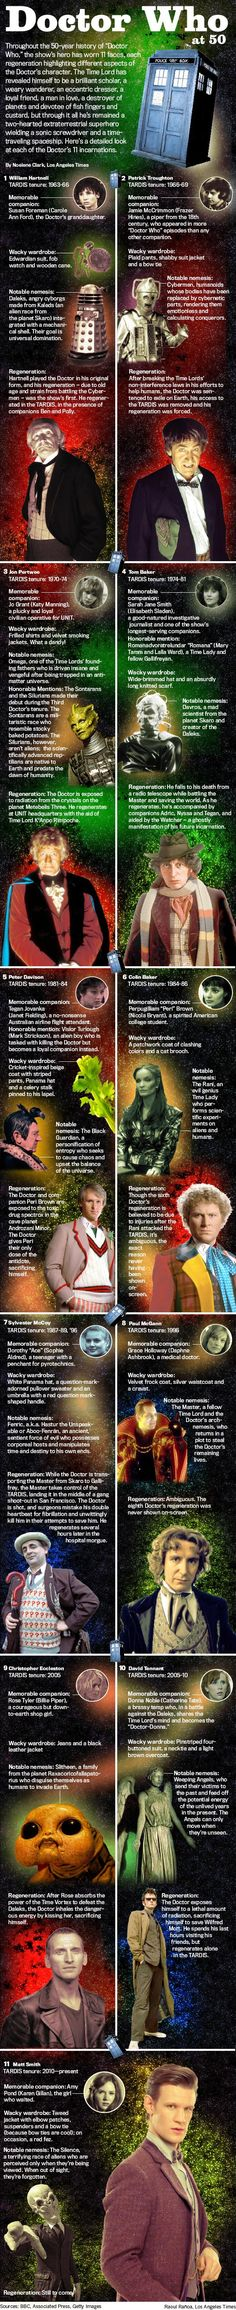 'Doctor Who' at 50: Meet the 11 faces of the Time Lord